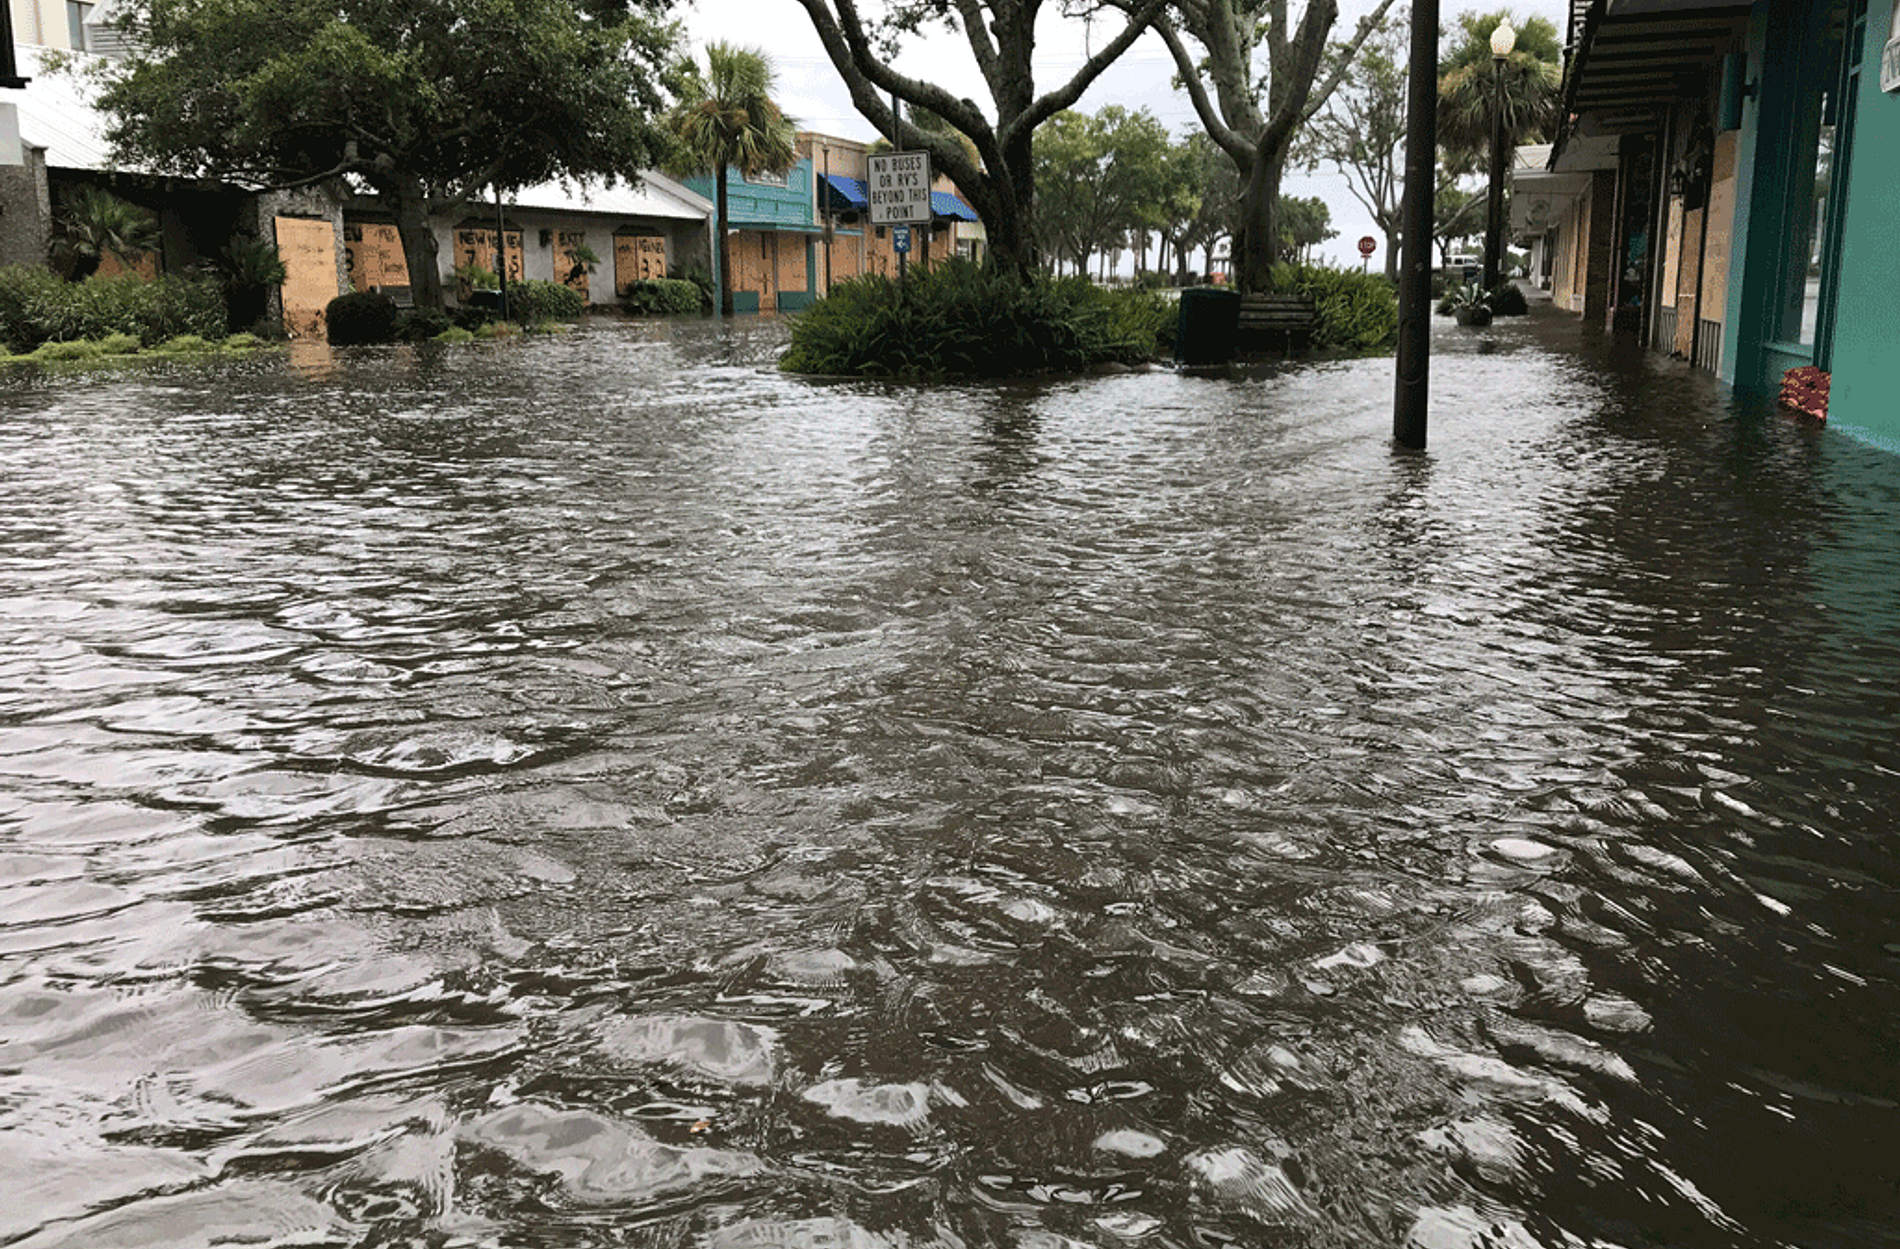 Flooded street after a storm